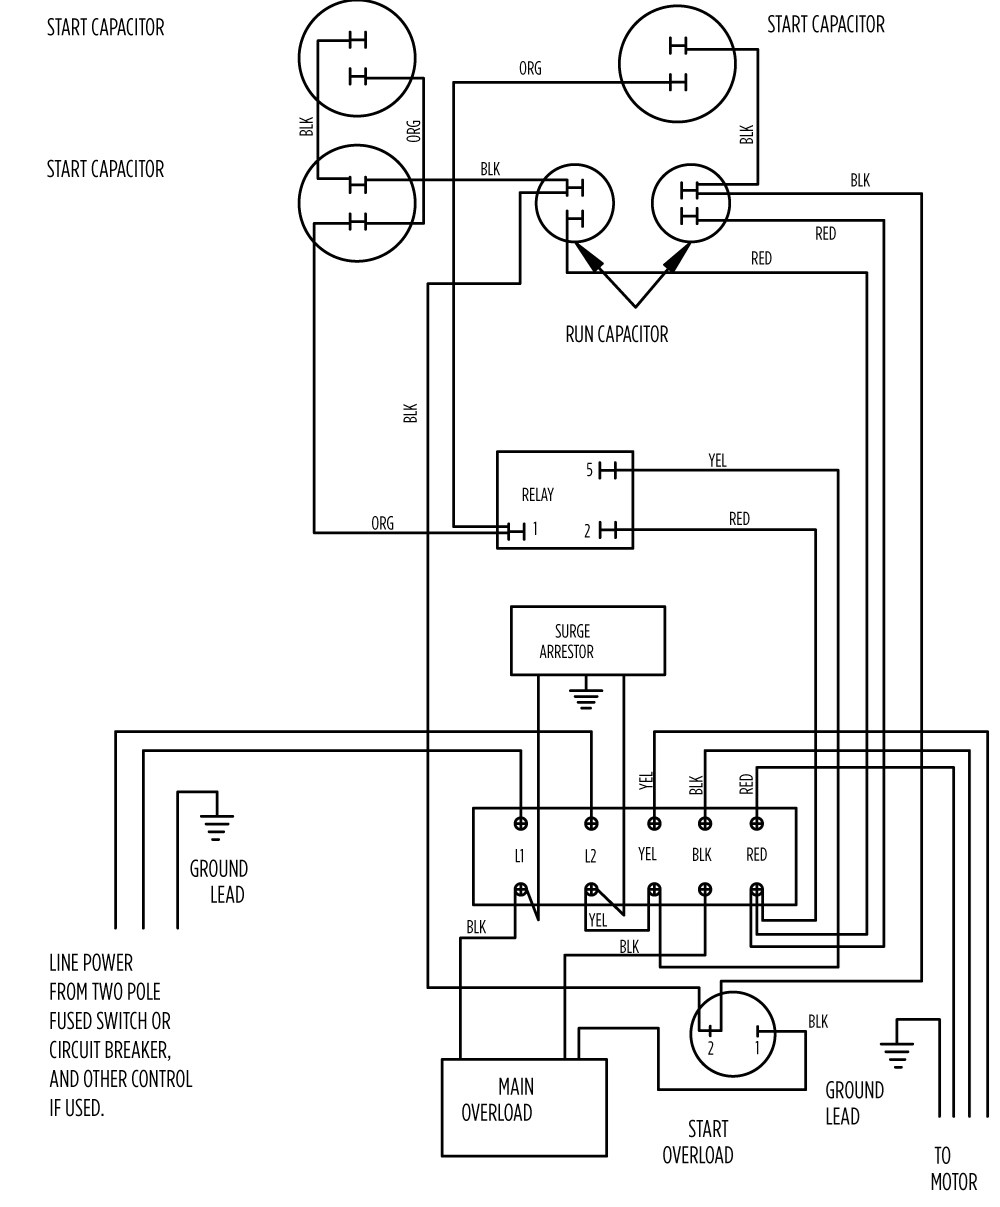 10 hp standard 282 202 9210 or 282 202 9230_aim gallery?format=jpg&quality=80 aim manual page 57 single phase motors and controls motor electrical control wiring diagrams at soozxer.org